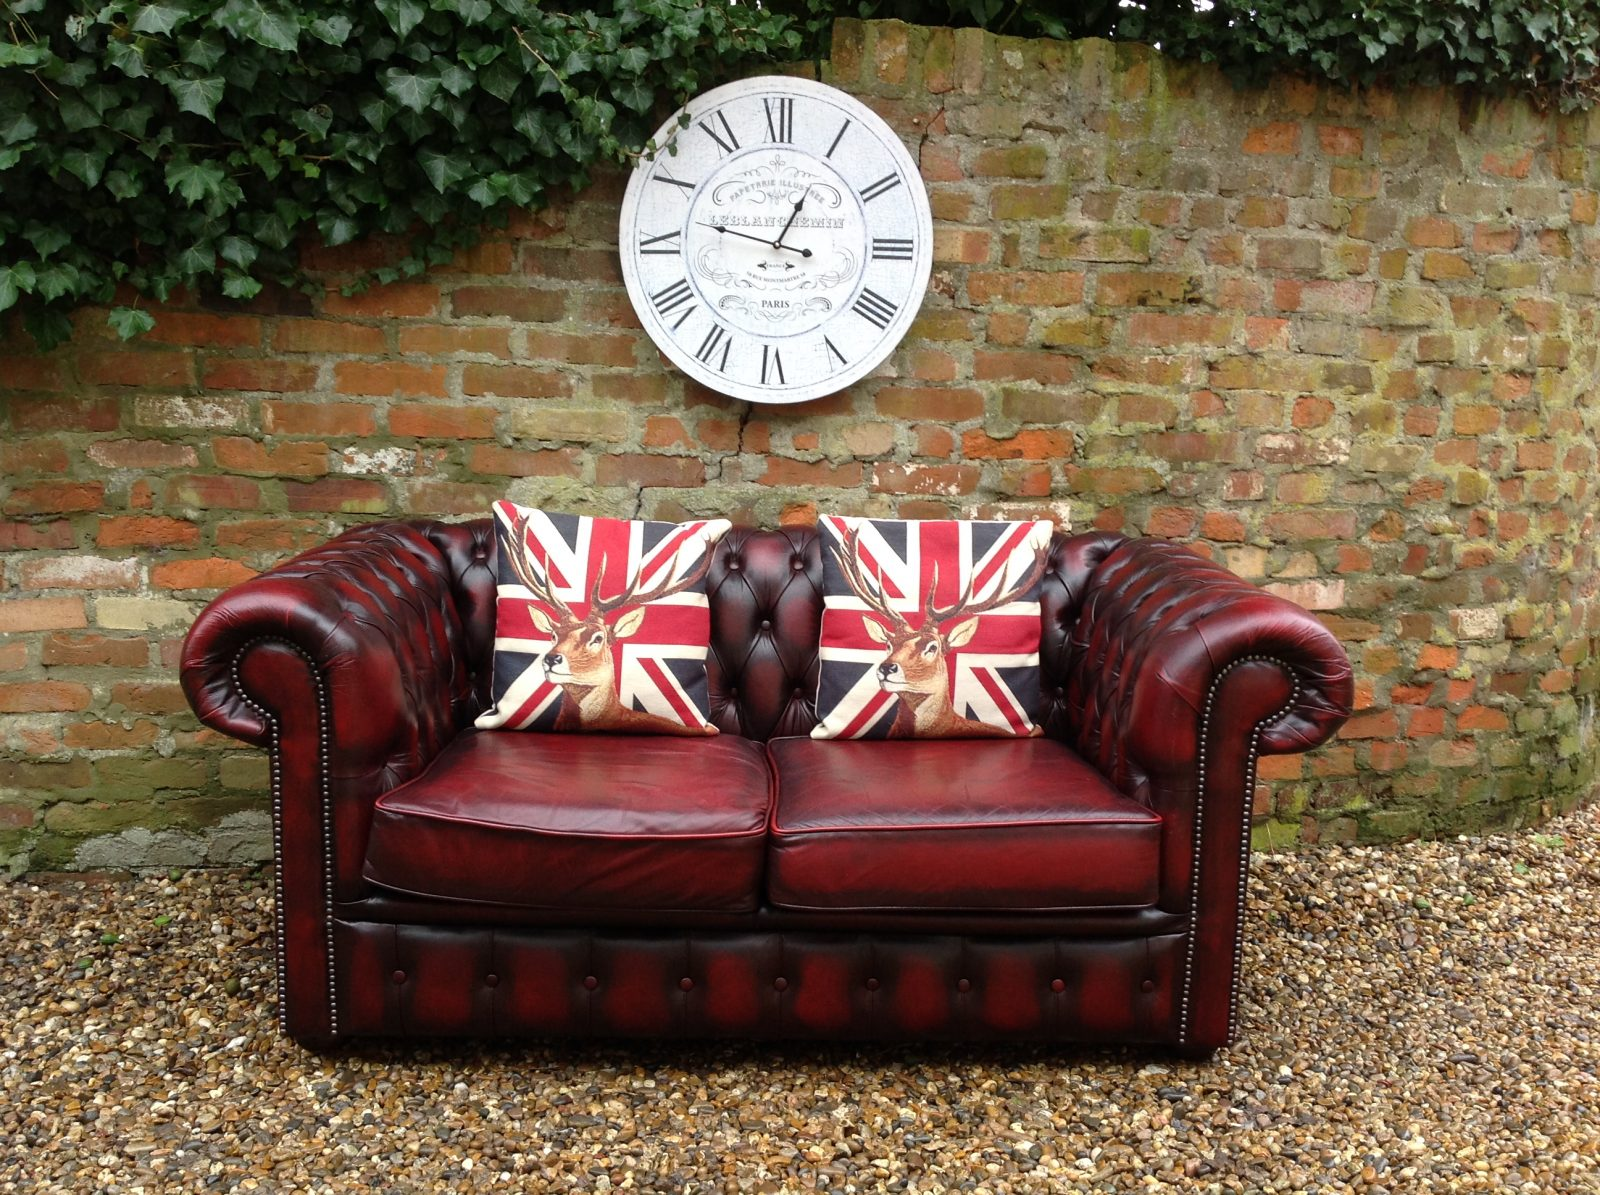 Classic Oxblood Red 2 Seater Chesterfield Sofa. ( Matching Large 2 Seater Available )